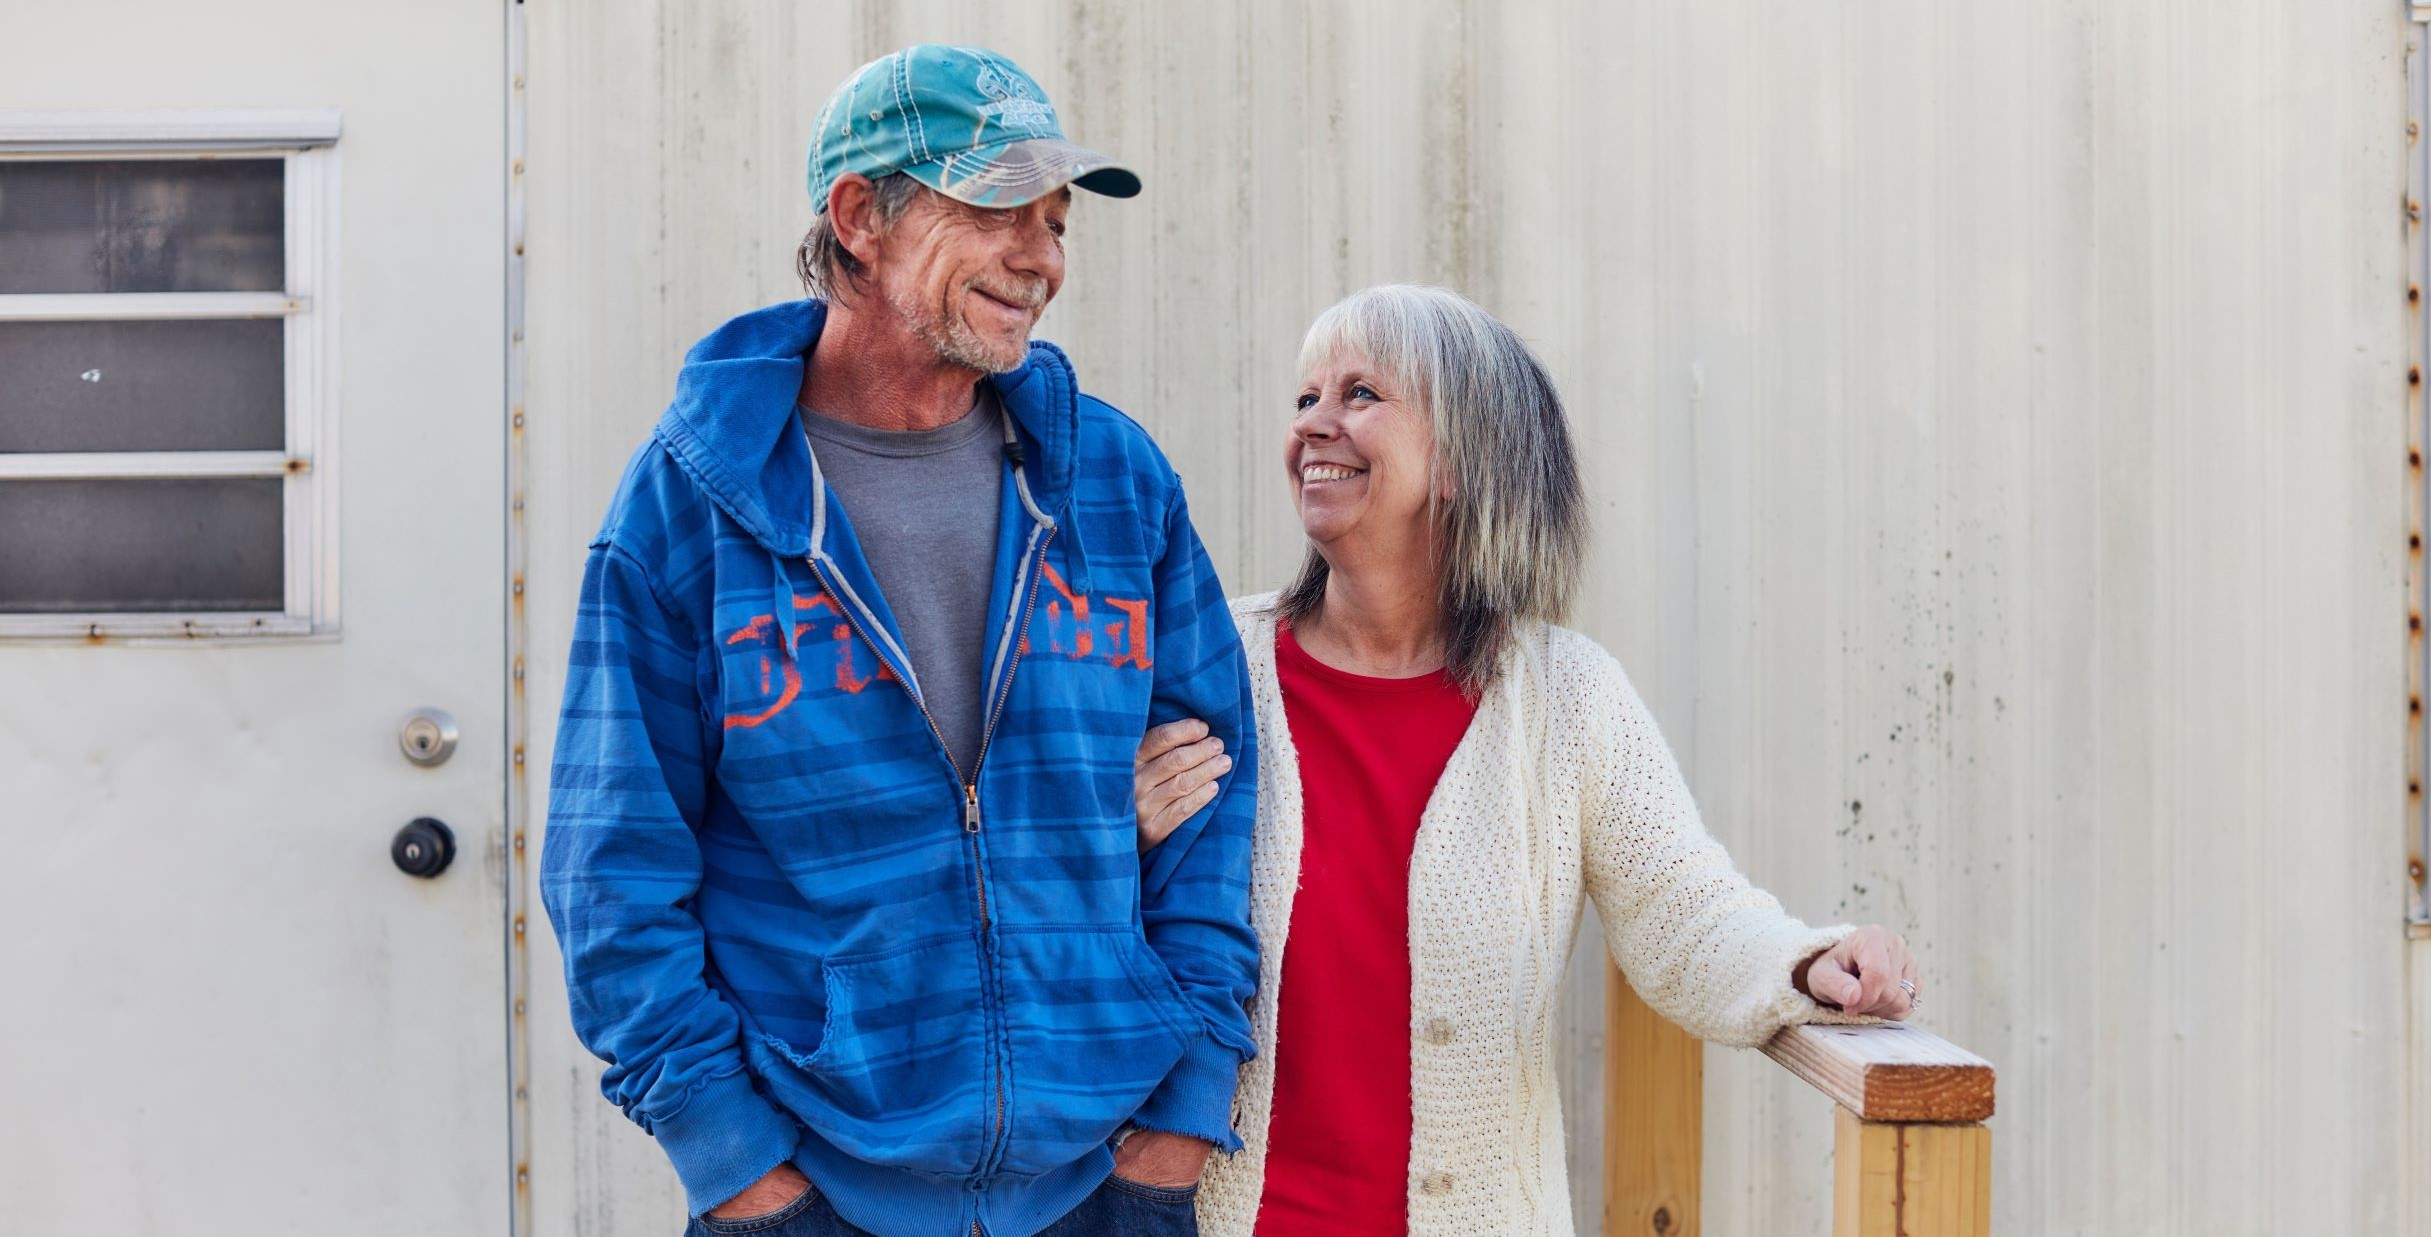 Kathy and brother David link arms and smile at each other outside David's mobile home